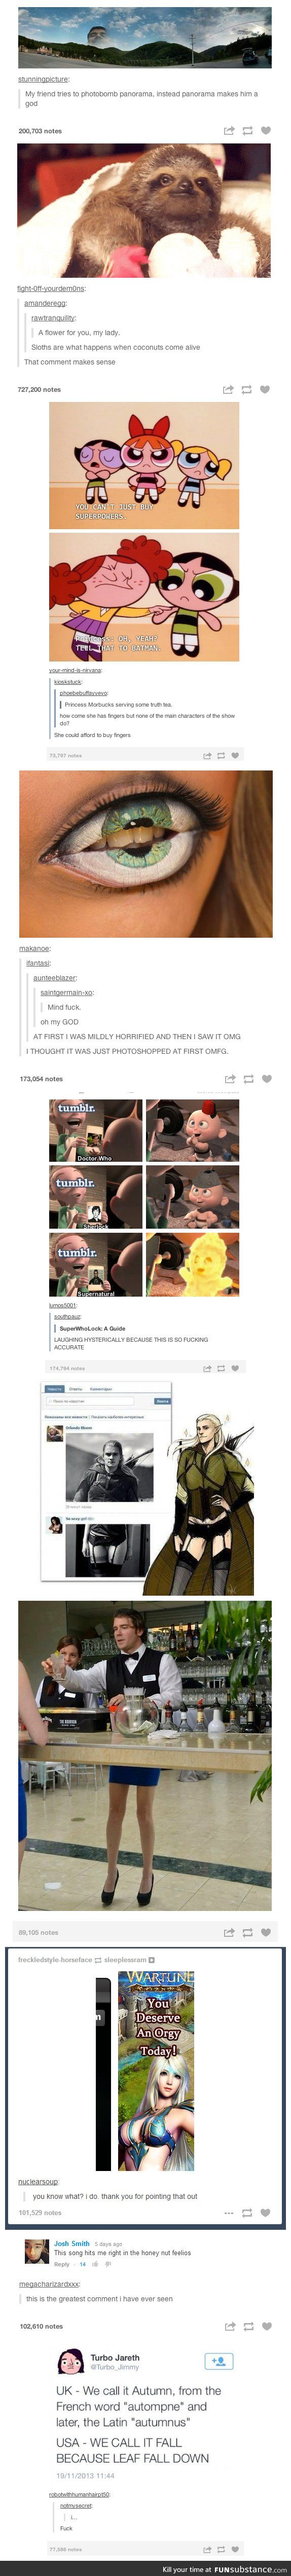 Another Tumblr compilation----The powerpuff girls post made me literally reconsider the entire show.